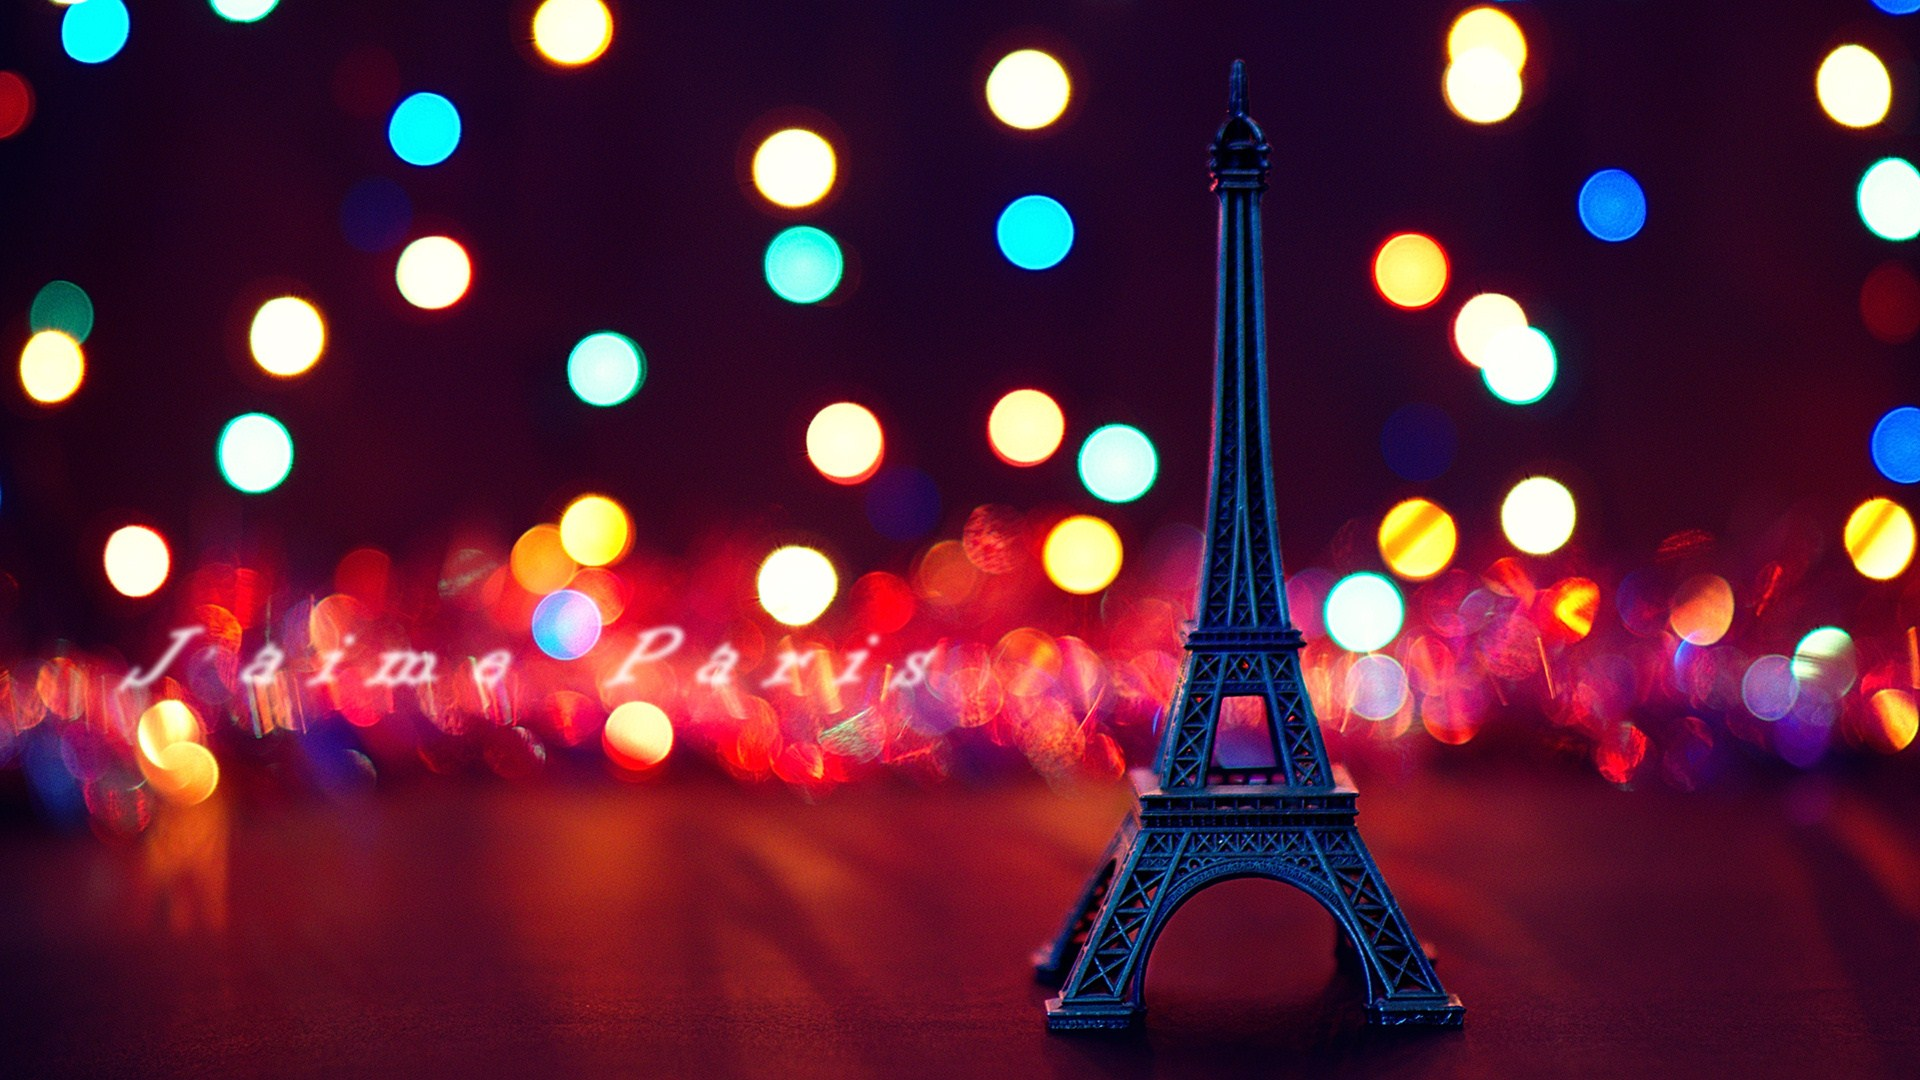 Eiffel-Tower-1920x1080-Need-iPhone-S-Plus-Background-for-IPhoneSPlus-wallpaper-wpc5804542